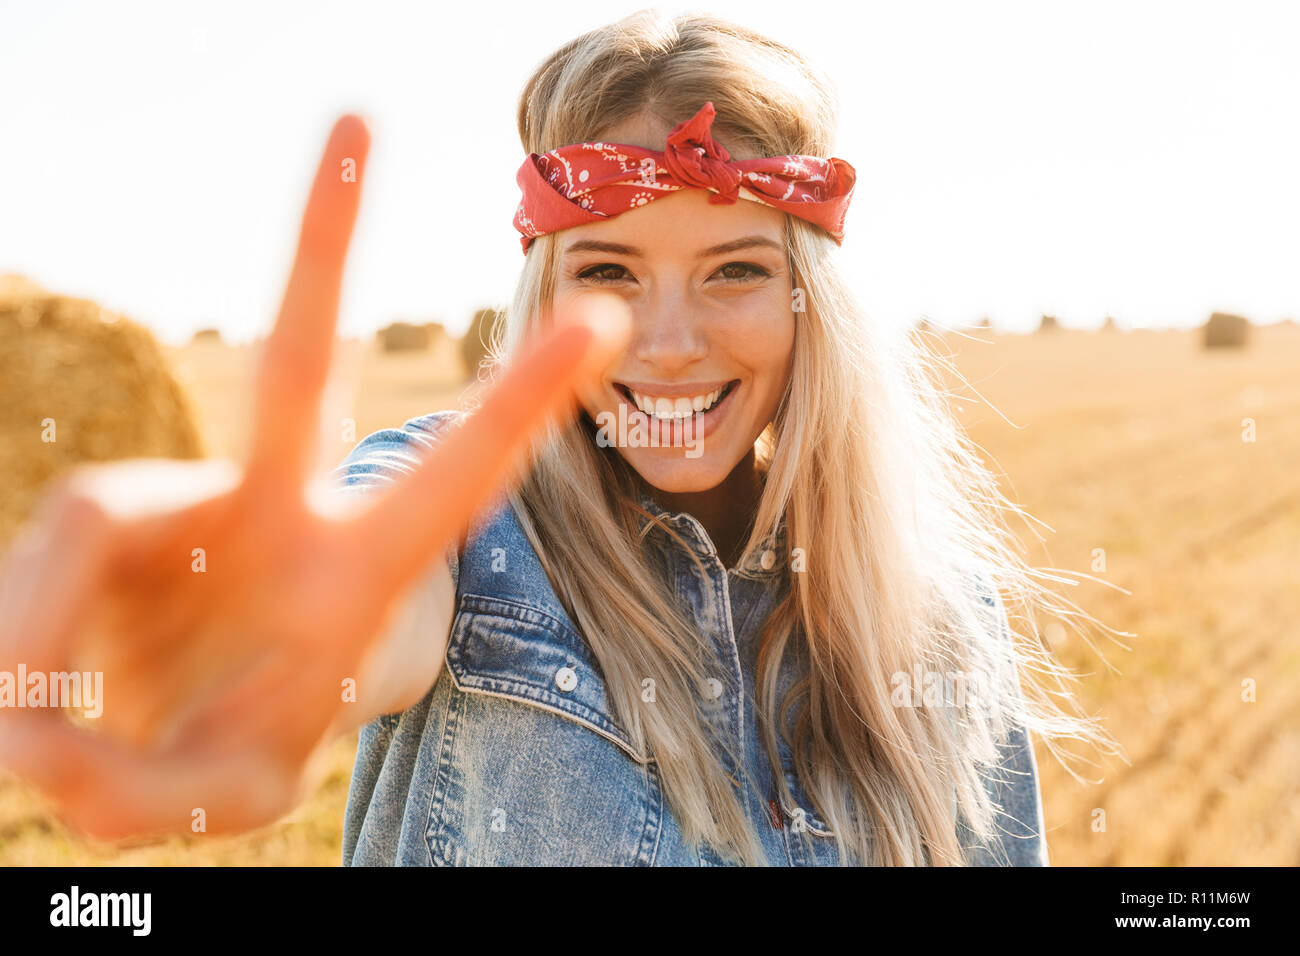 Beautiful Young Blonde Girl In Headband At The Wheat Field Showing